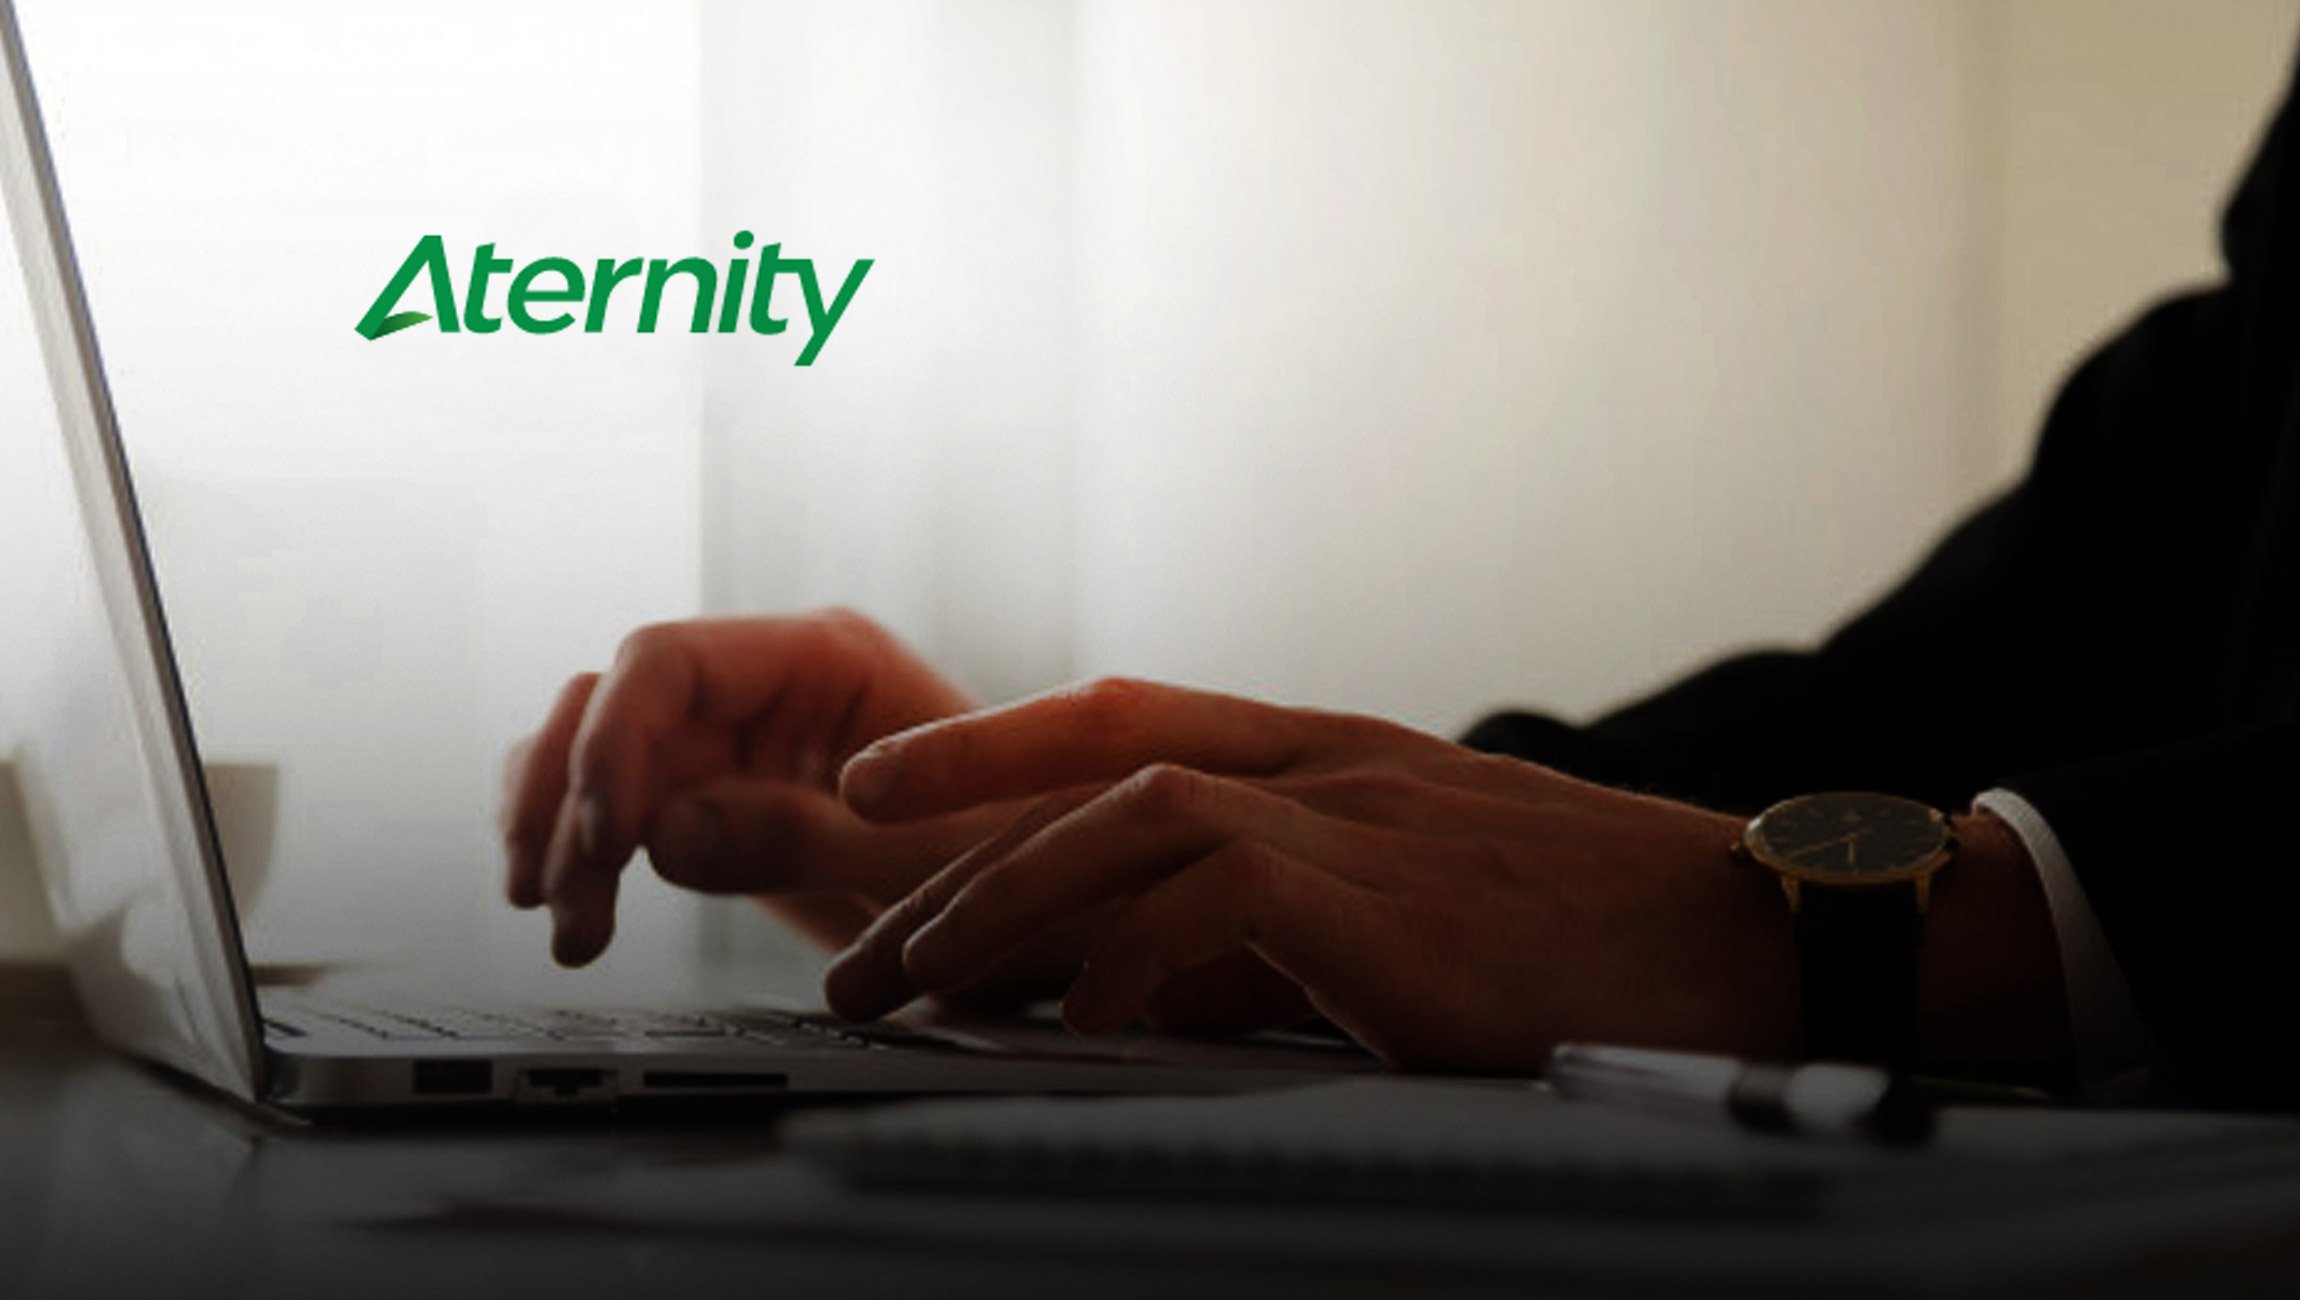 Aternity Democratizes DEM Across The Enterprise With New Digital Experience Index 1